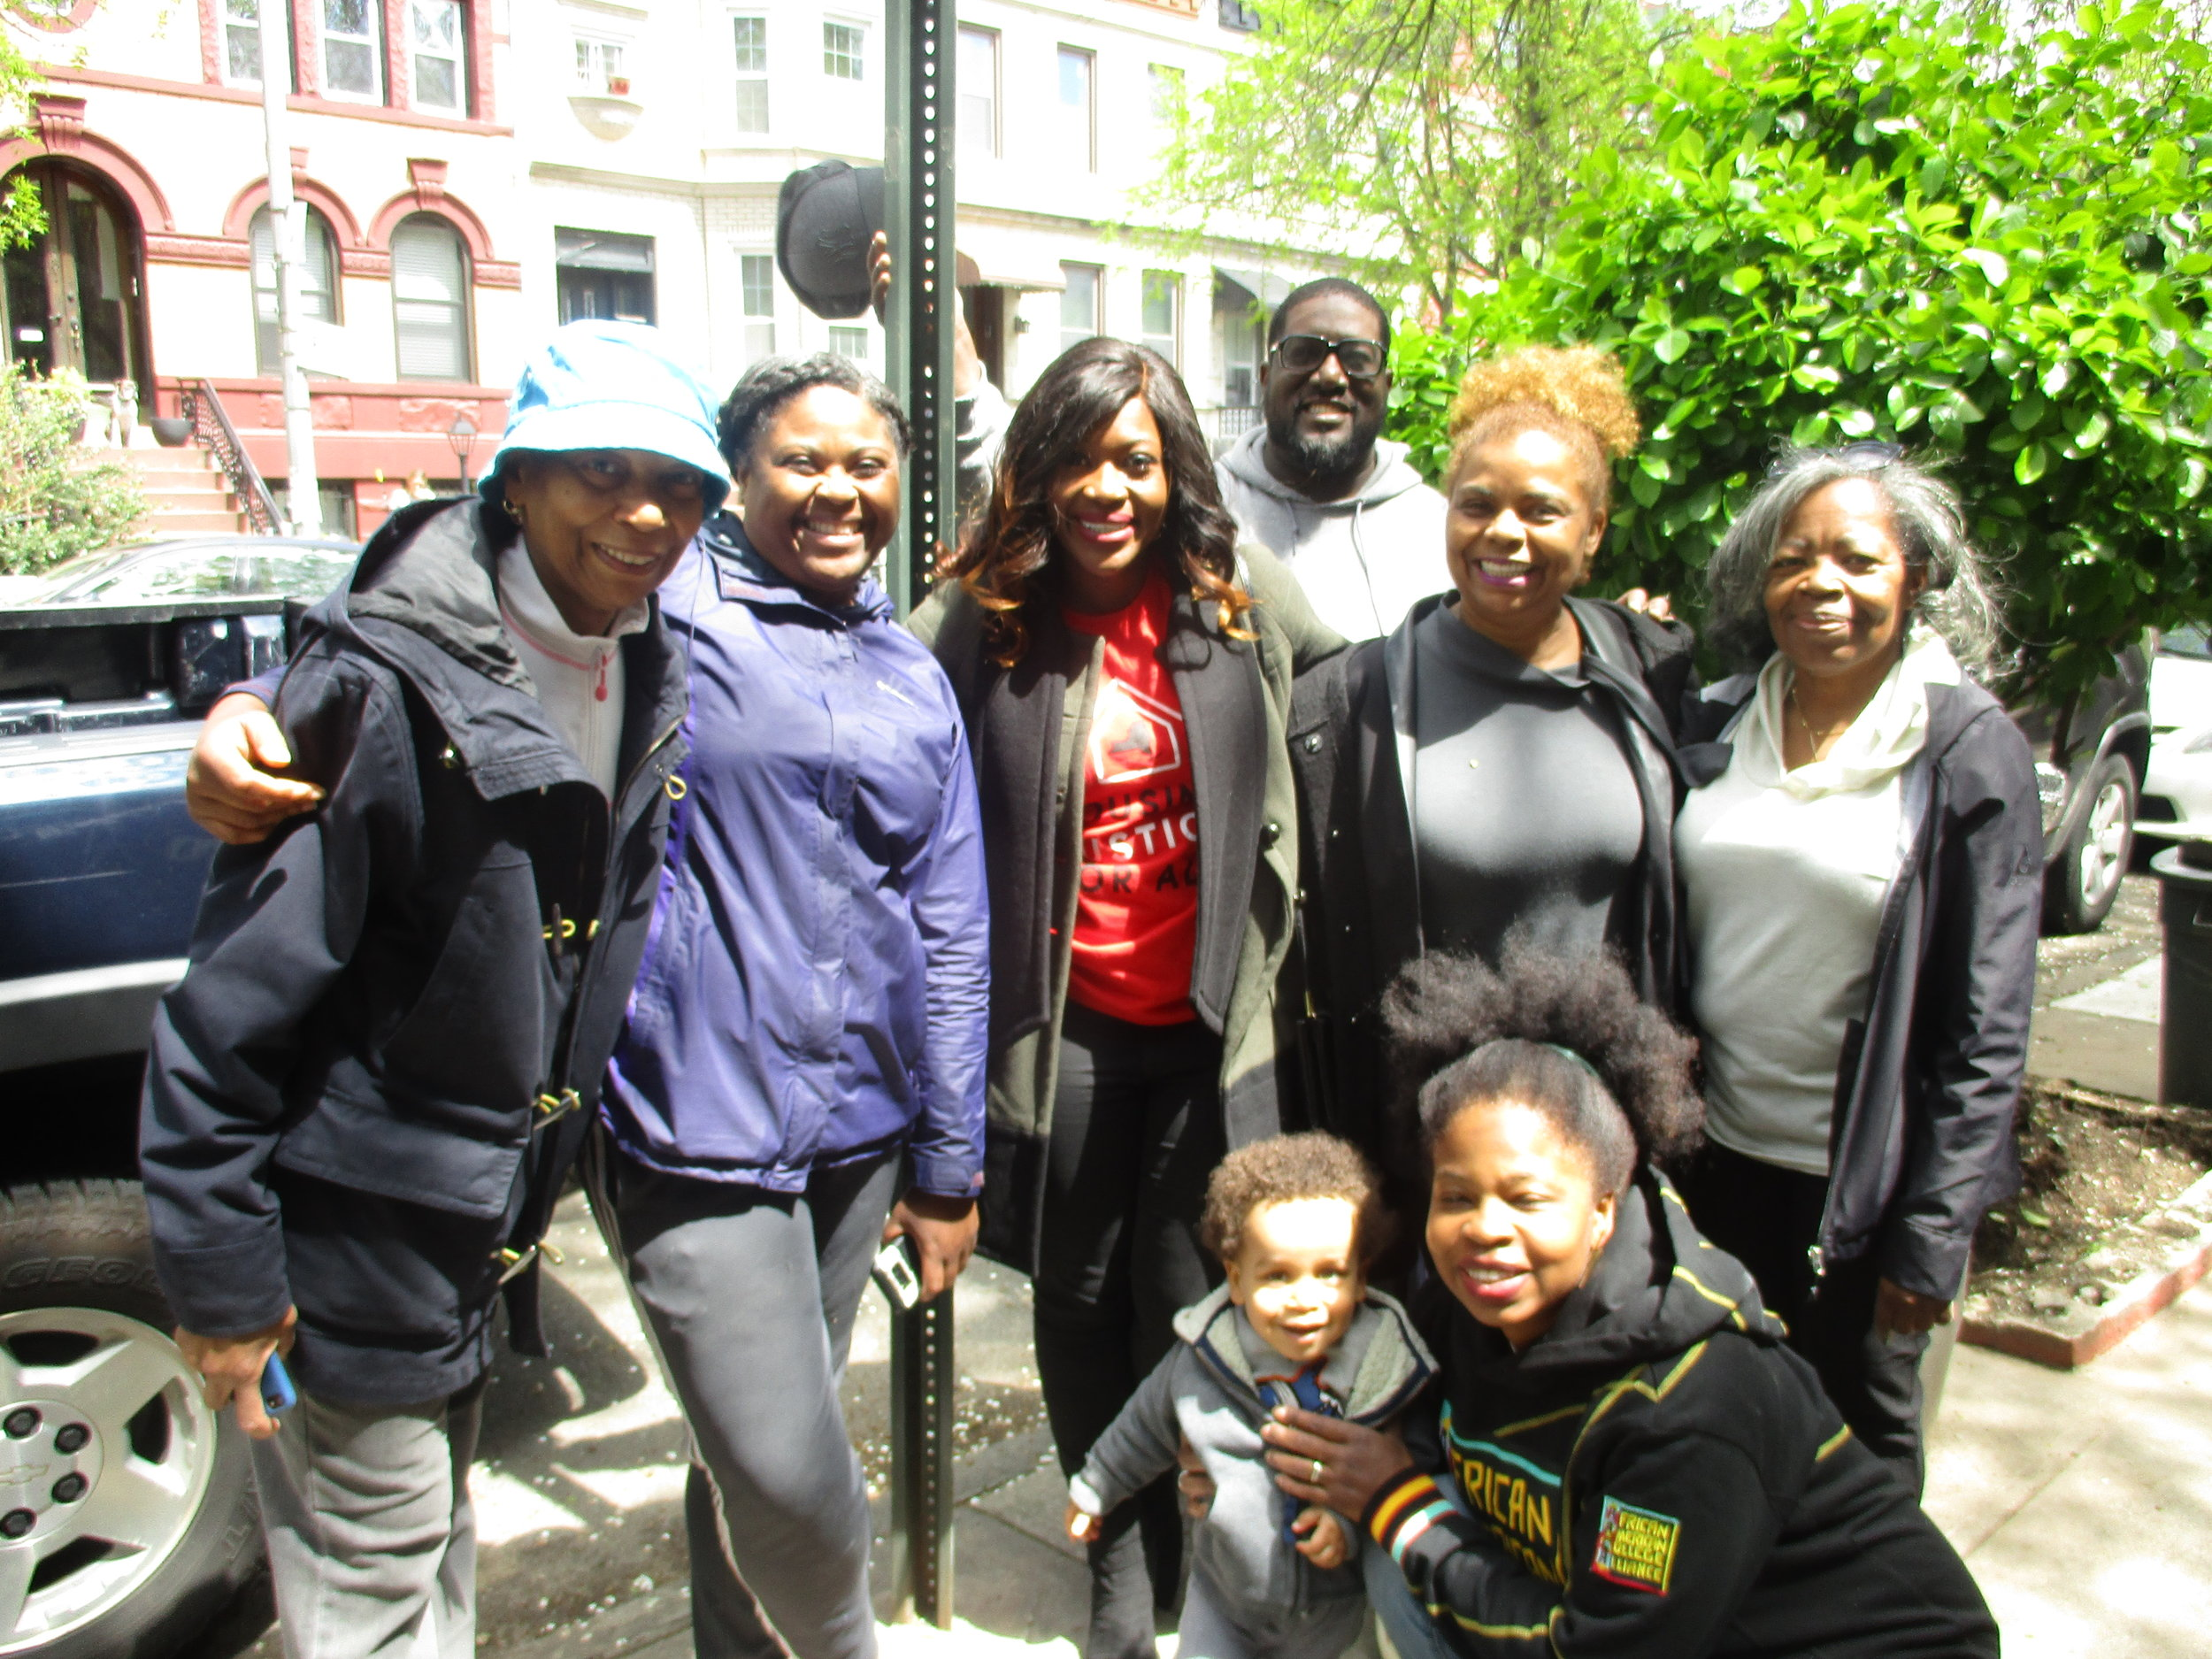 Assemblywoman Richardson and Plant members